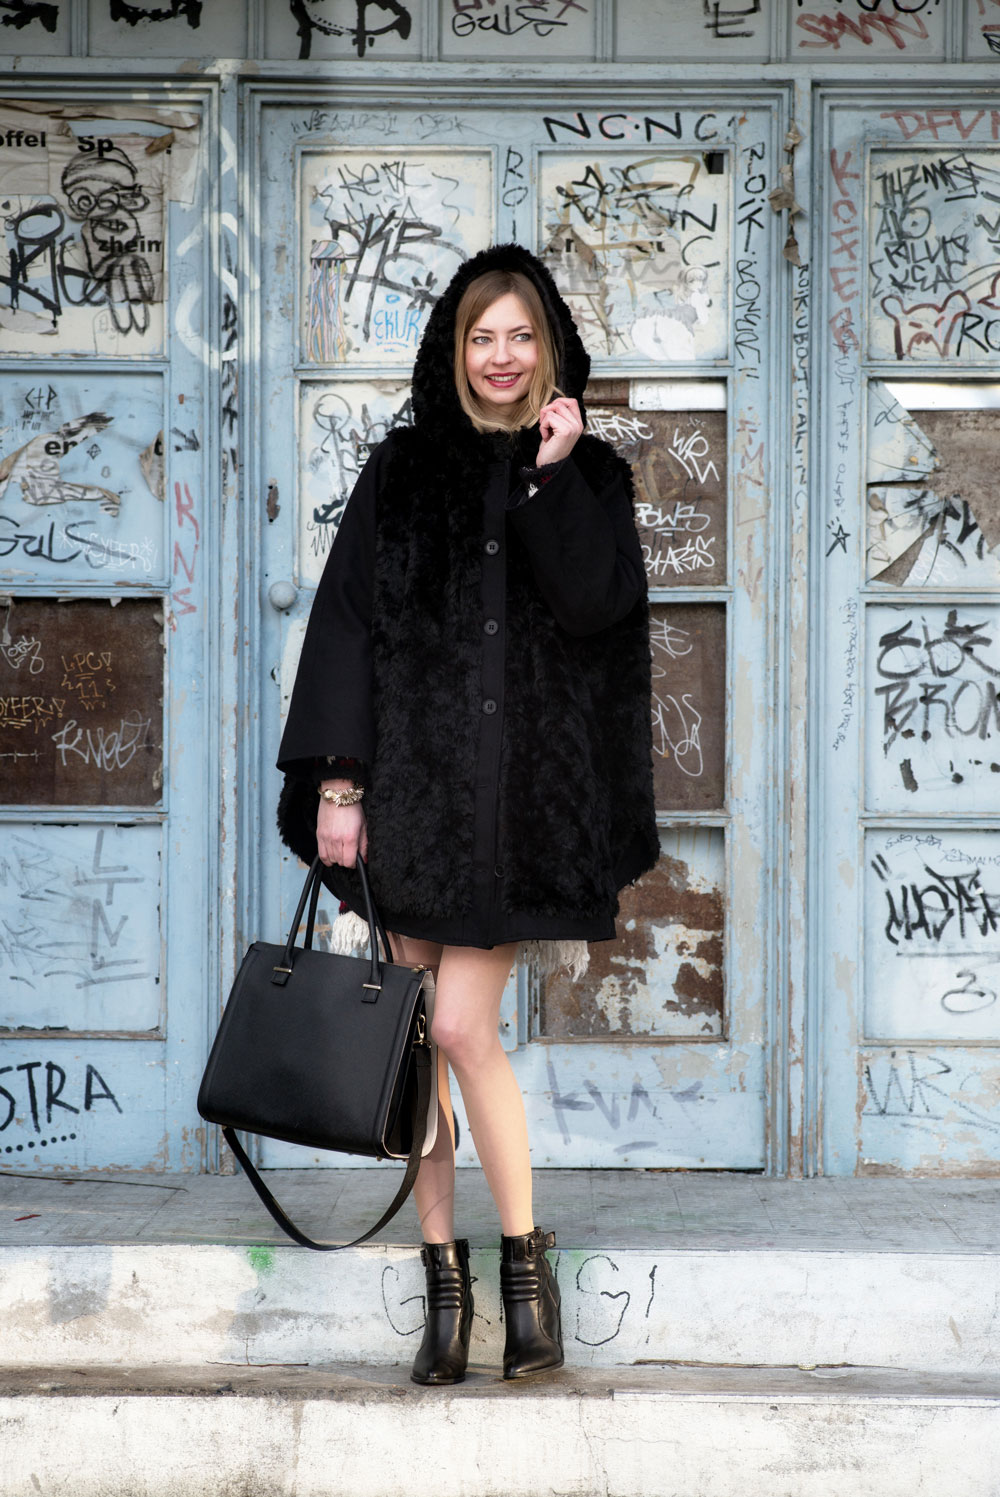 How I met my outfit - The big furry Yeti coat